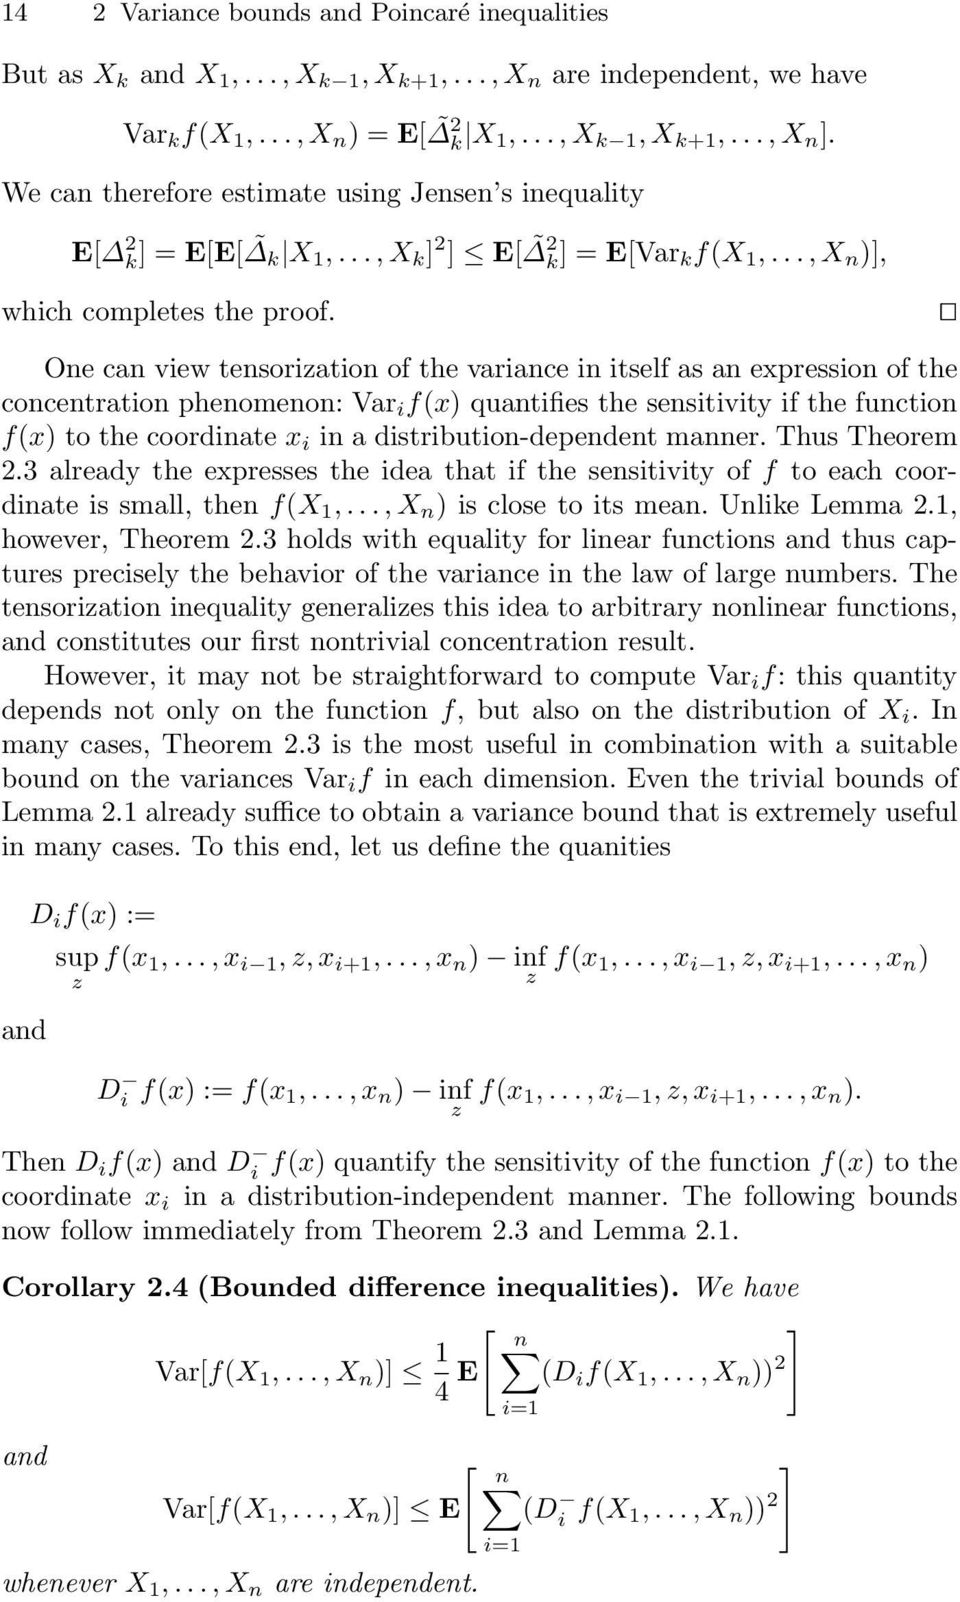 ut One can view tensorization of the variance in itself as an expression of the concentration phenomenon: Var i f(x) quantifies the sensitivity if the function f(x) to the coordinate x i in a